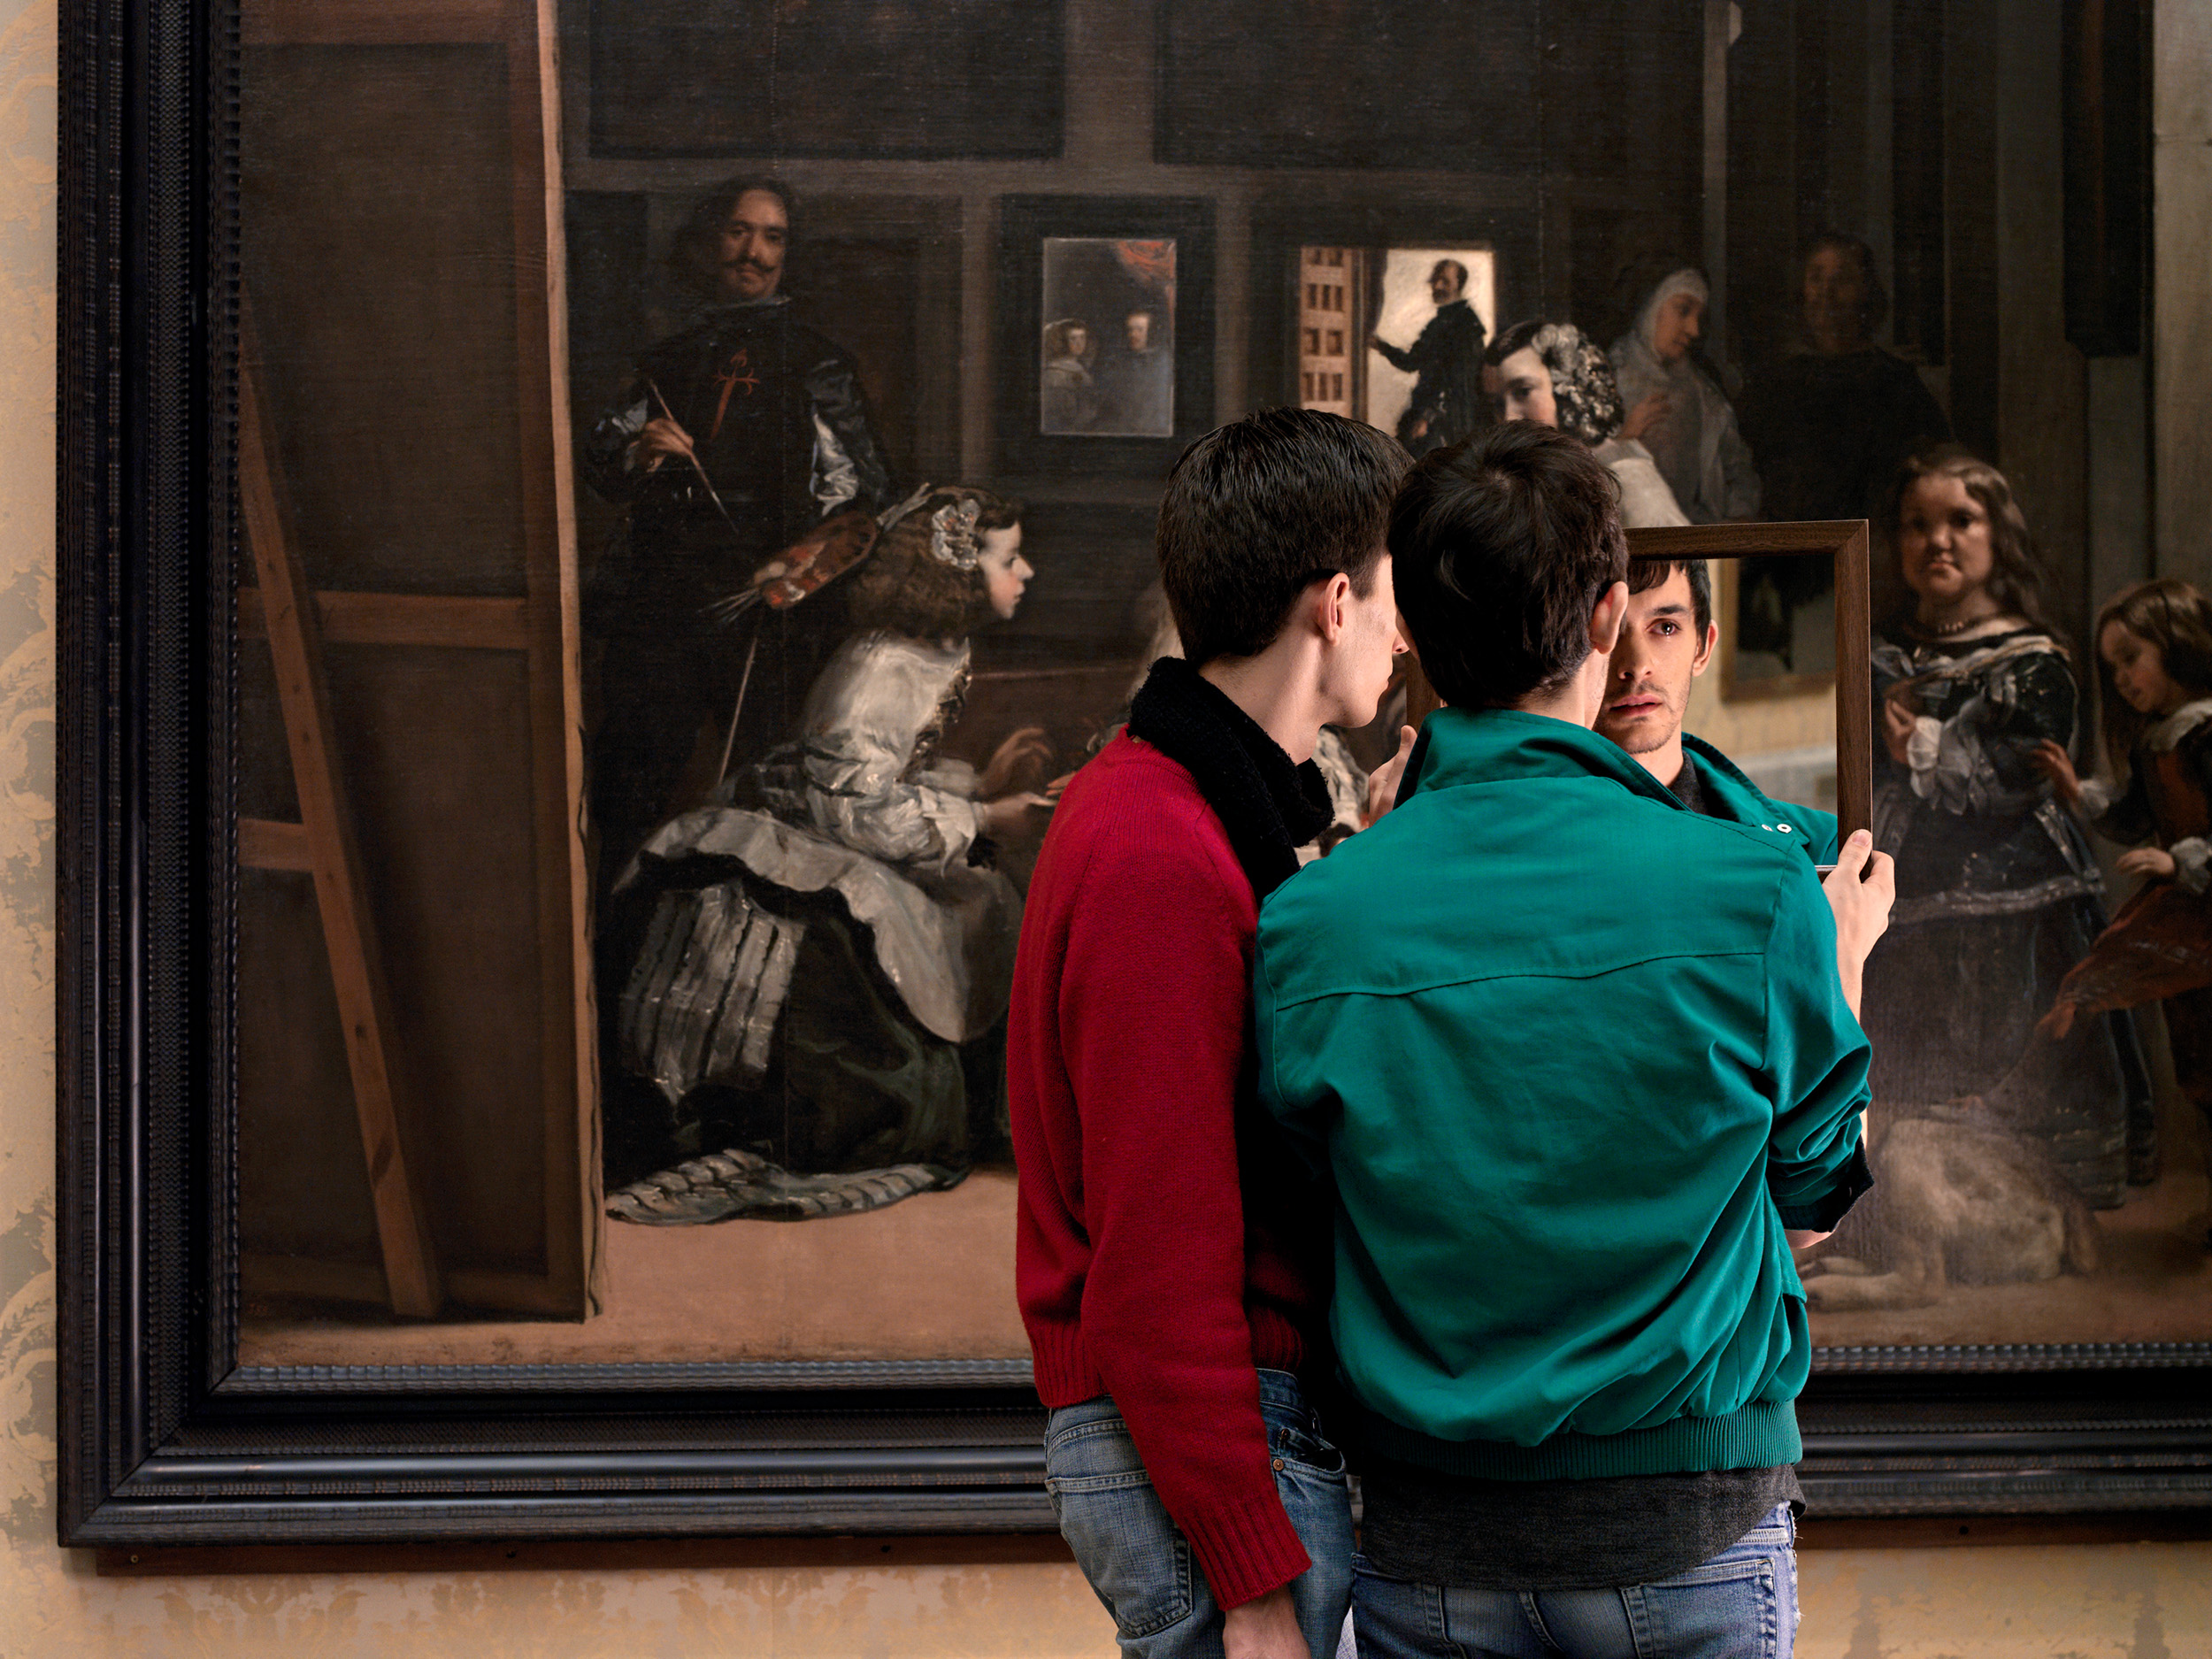 A Moment of Reflection  2008, colour photograph 102 x 136 cm / 40 x 53.5 in. Edition of 7 Produced with the cooperation of the Museo Nacional del Prado